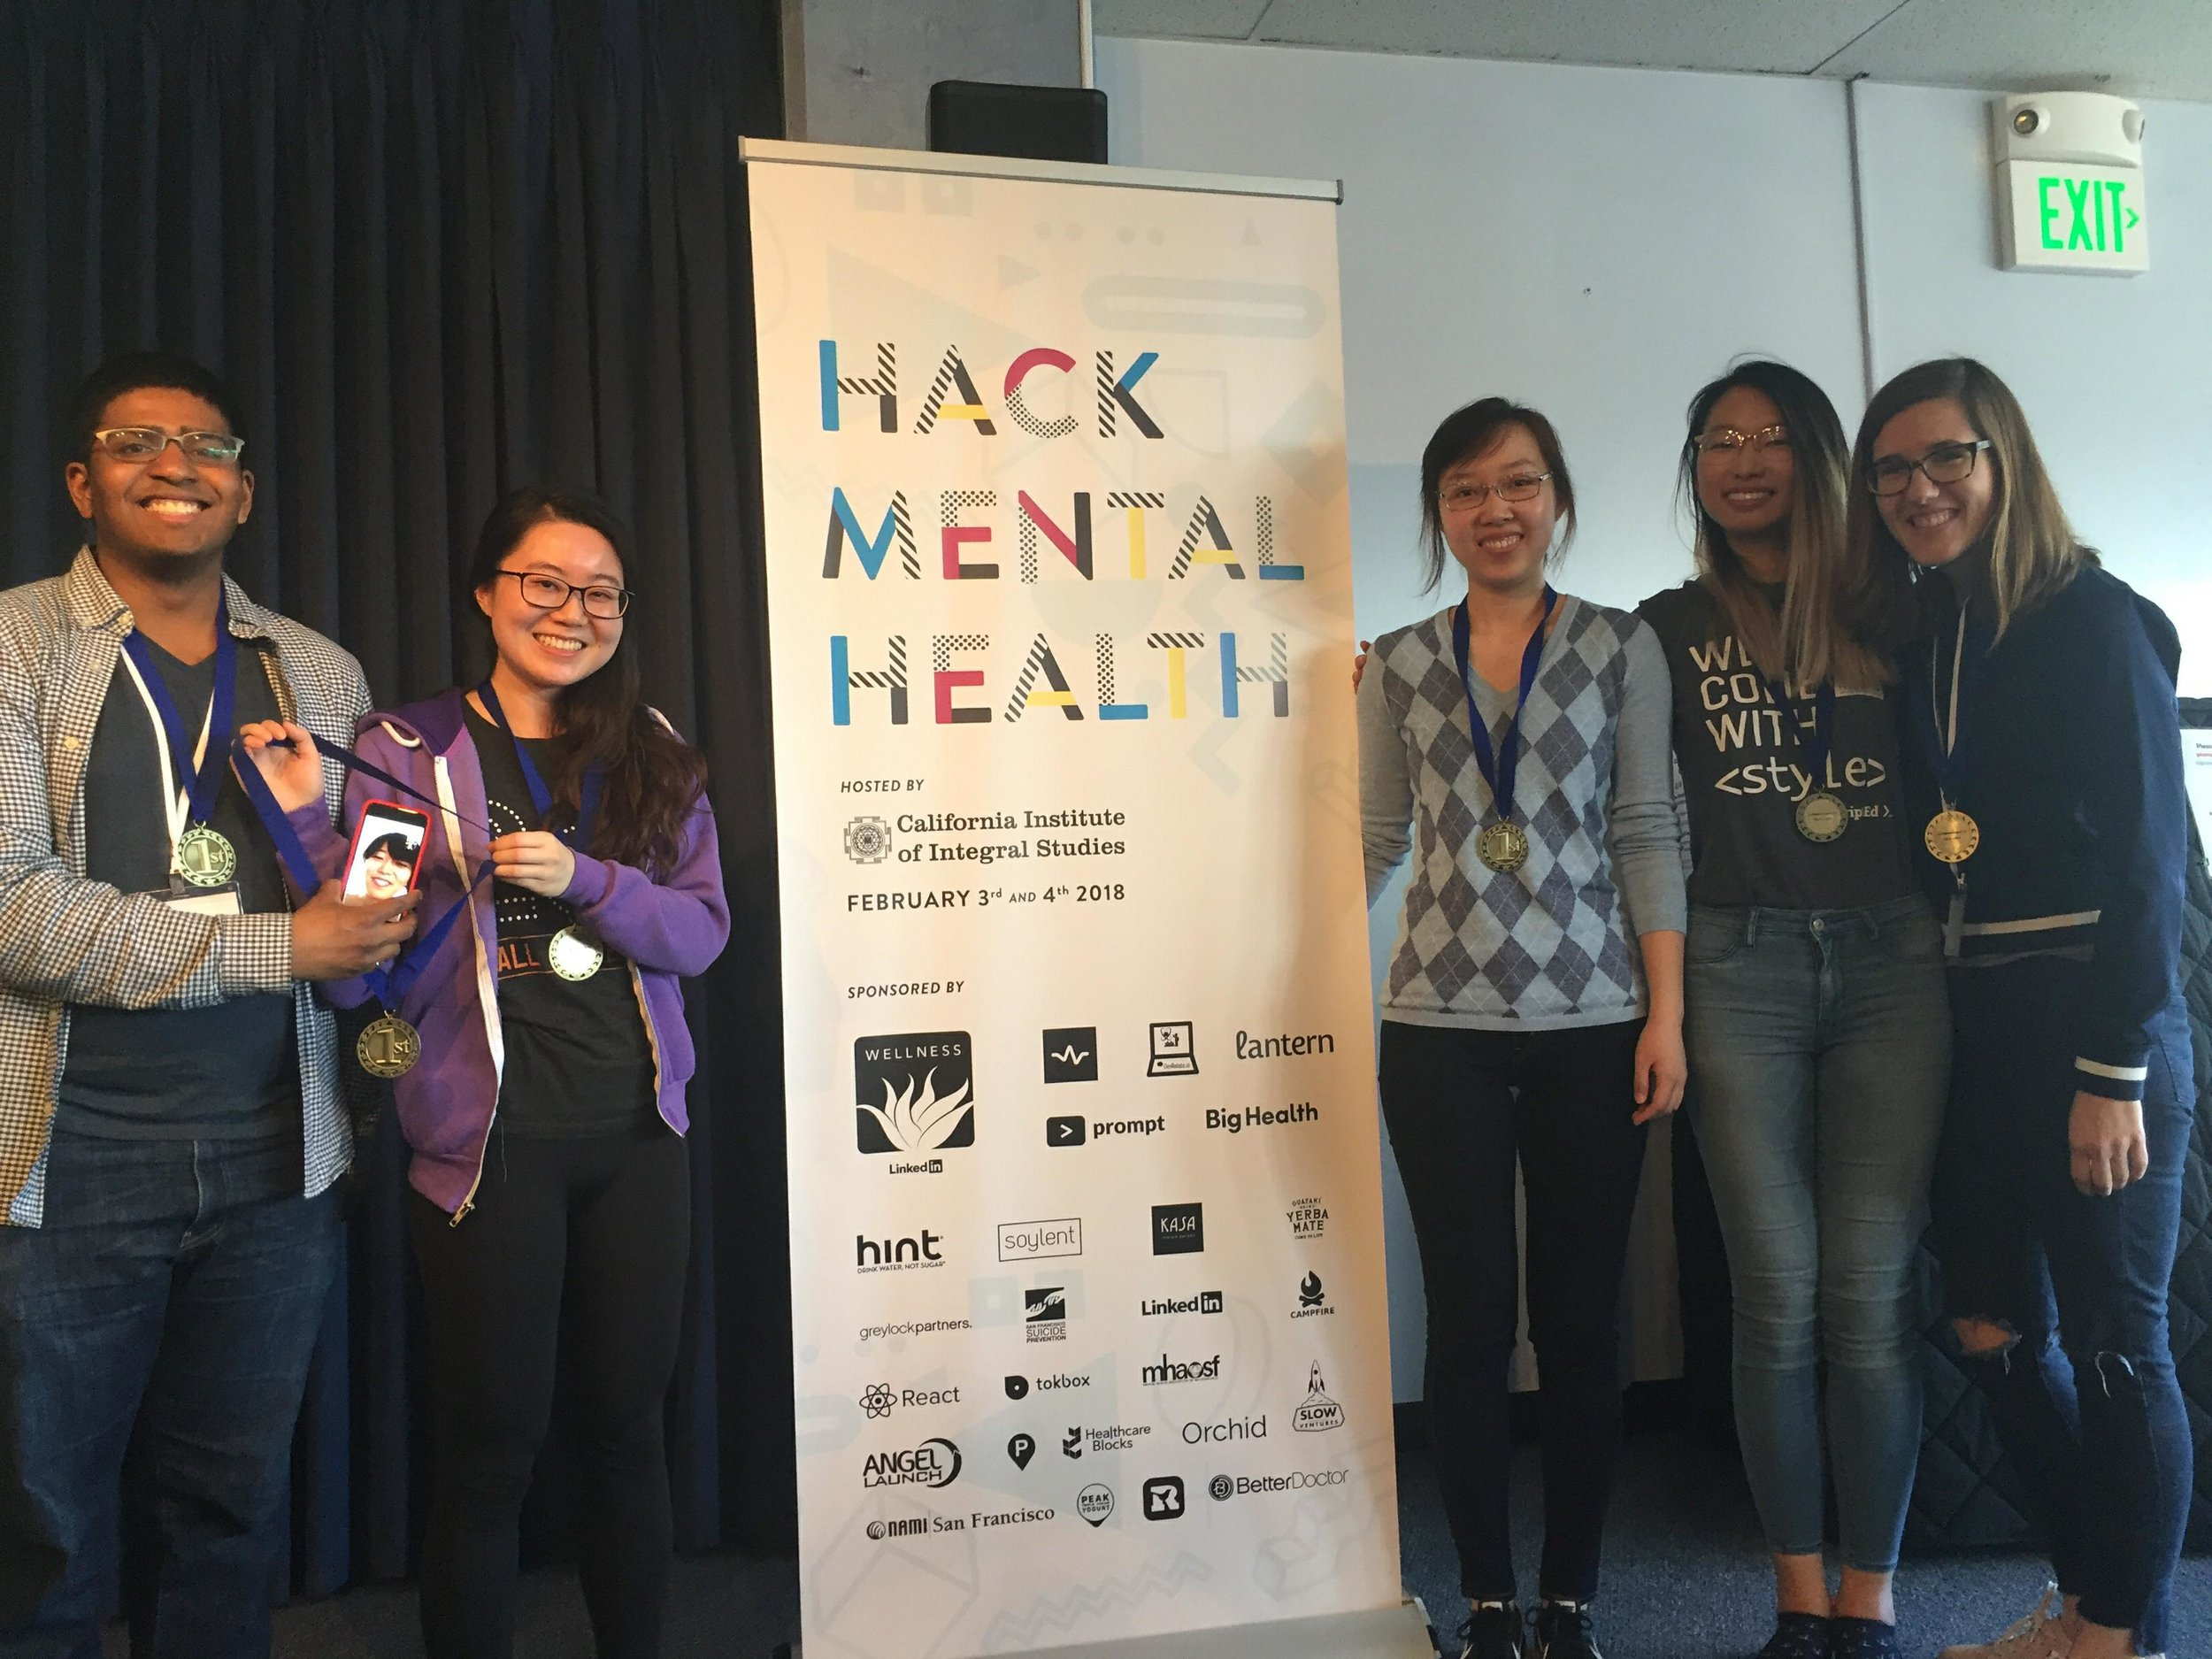 Congratulations to Huddle, the winners of HackMentalHealth